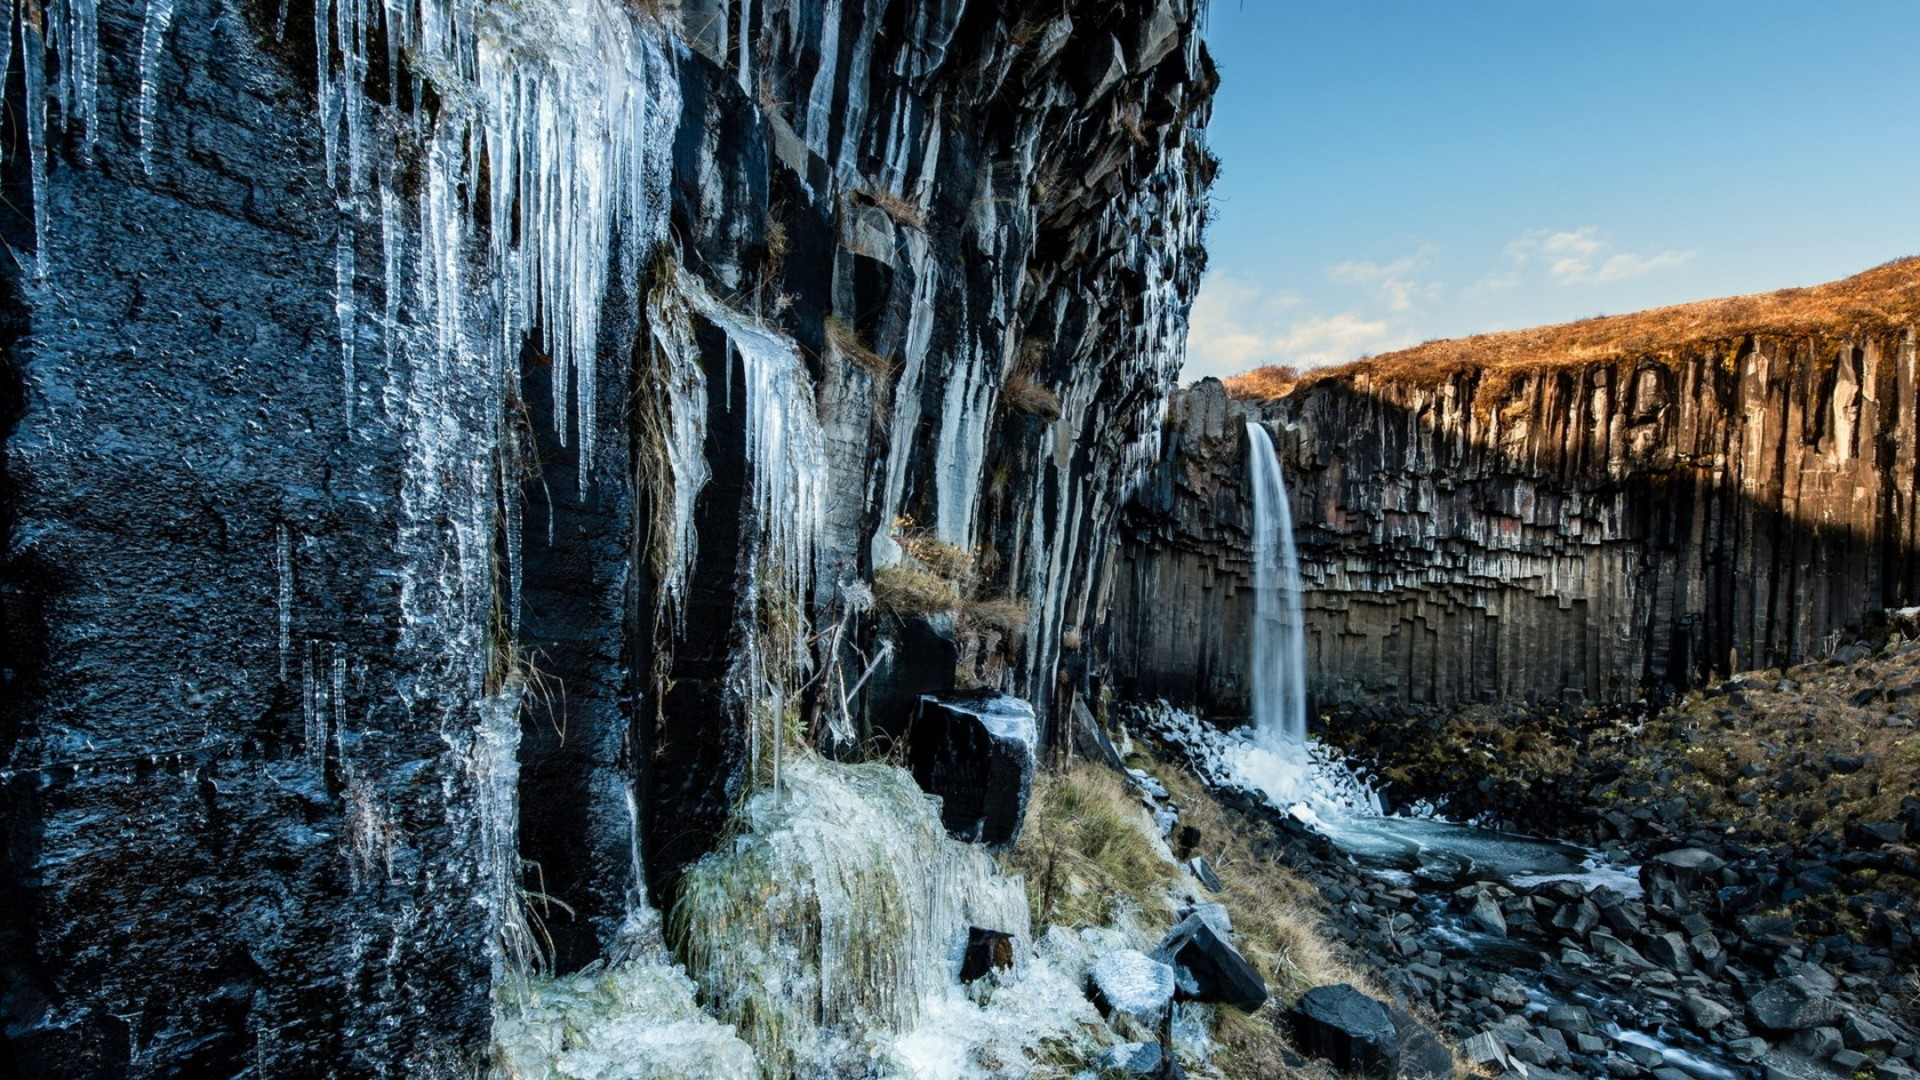 Waterfalls Live Wallpaper 3d Hd Waterfall Icicles On Formation Cliff Hd Desktop Background